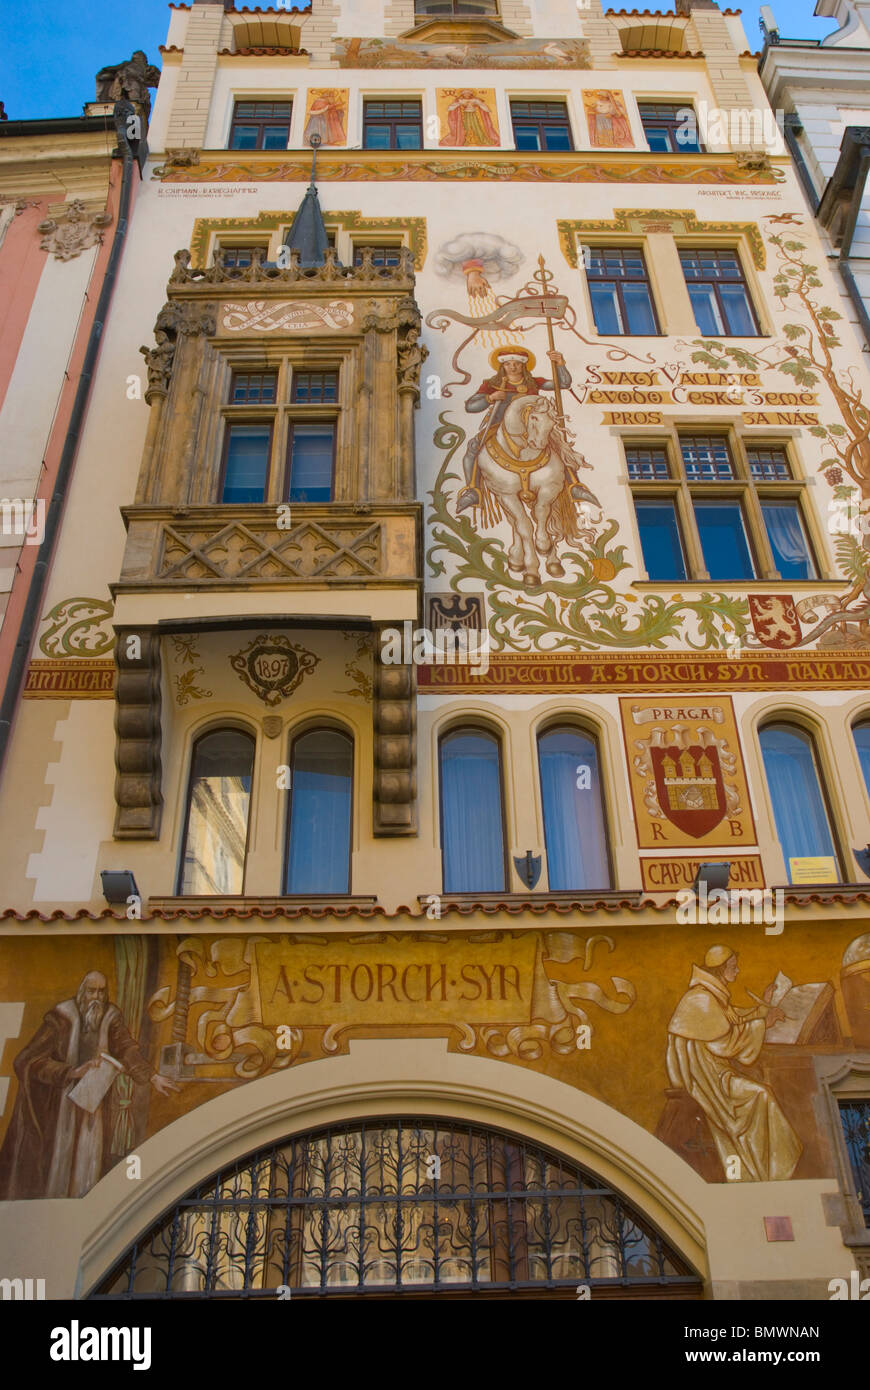 A Storch Syn house old town square Prague Czech Republic Europe - Stock Image